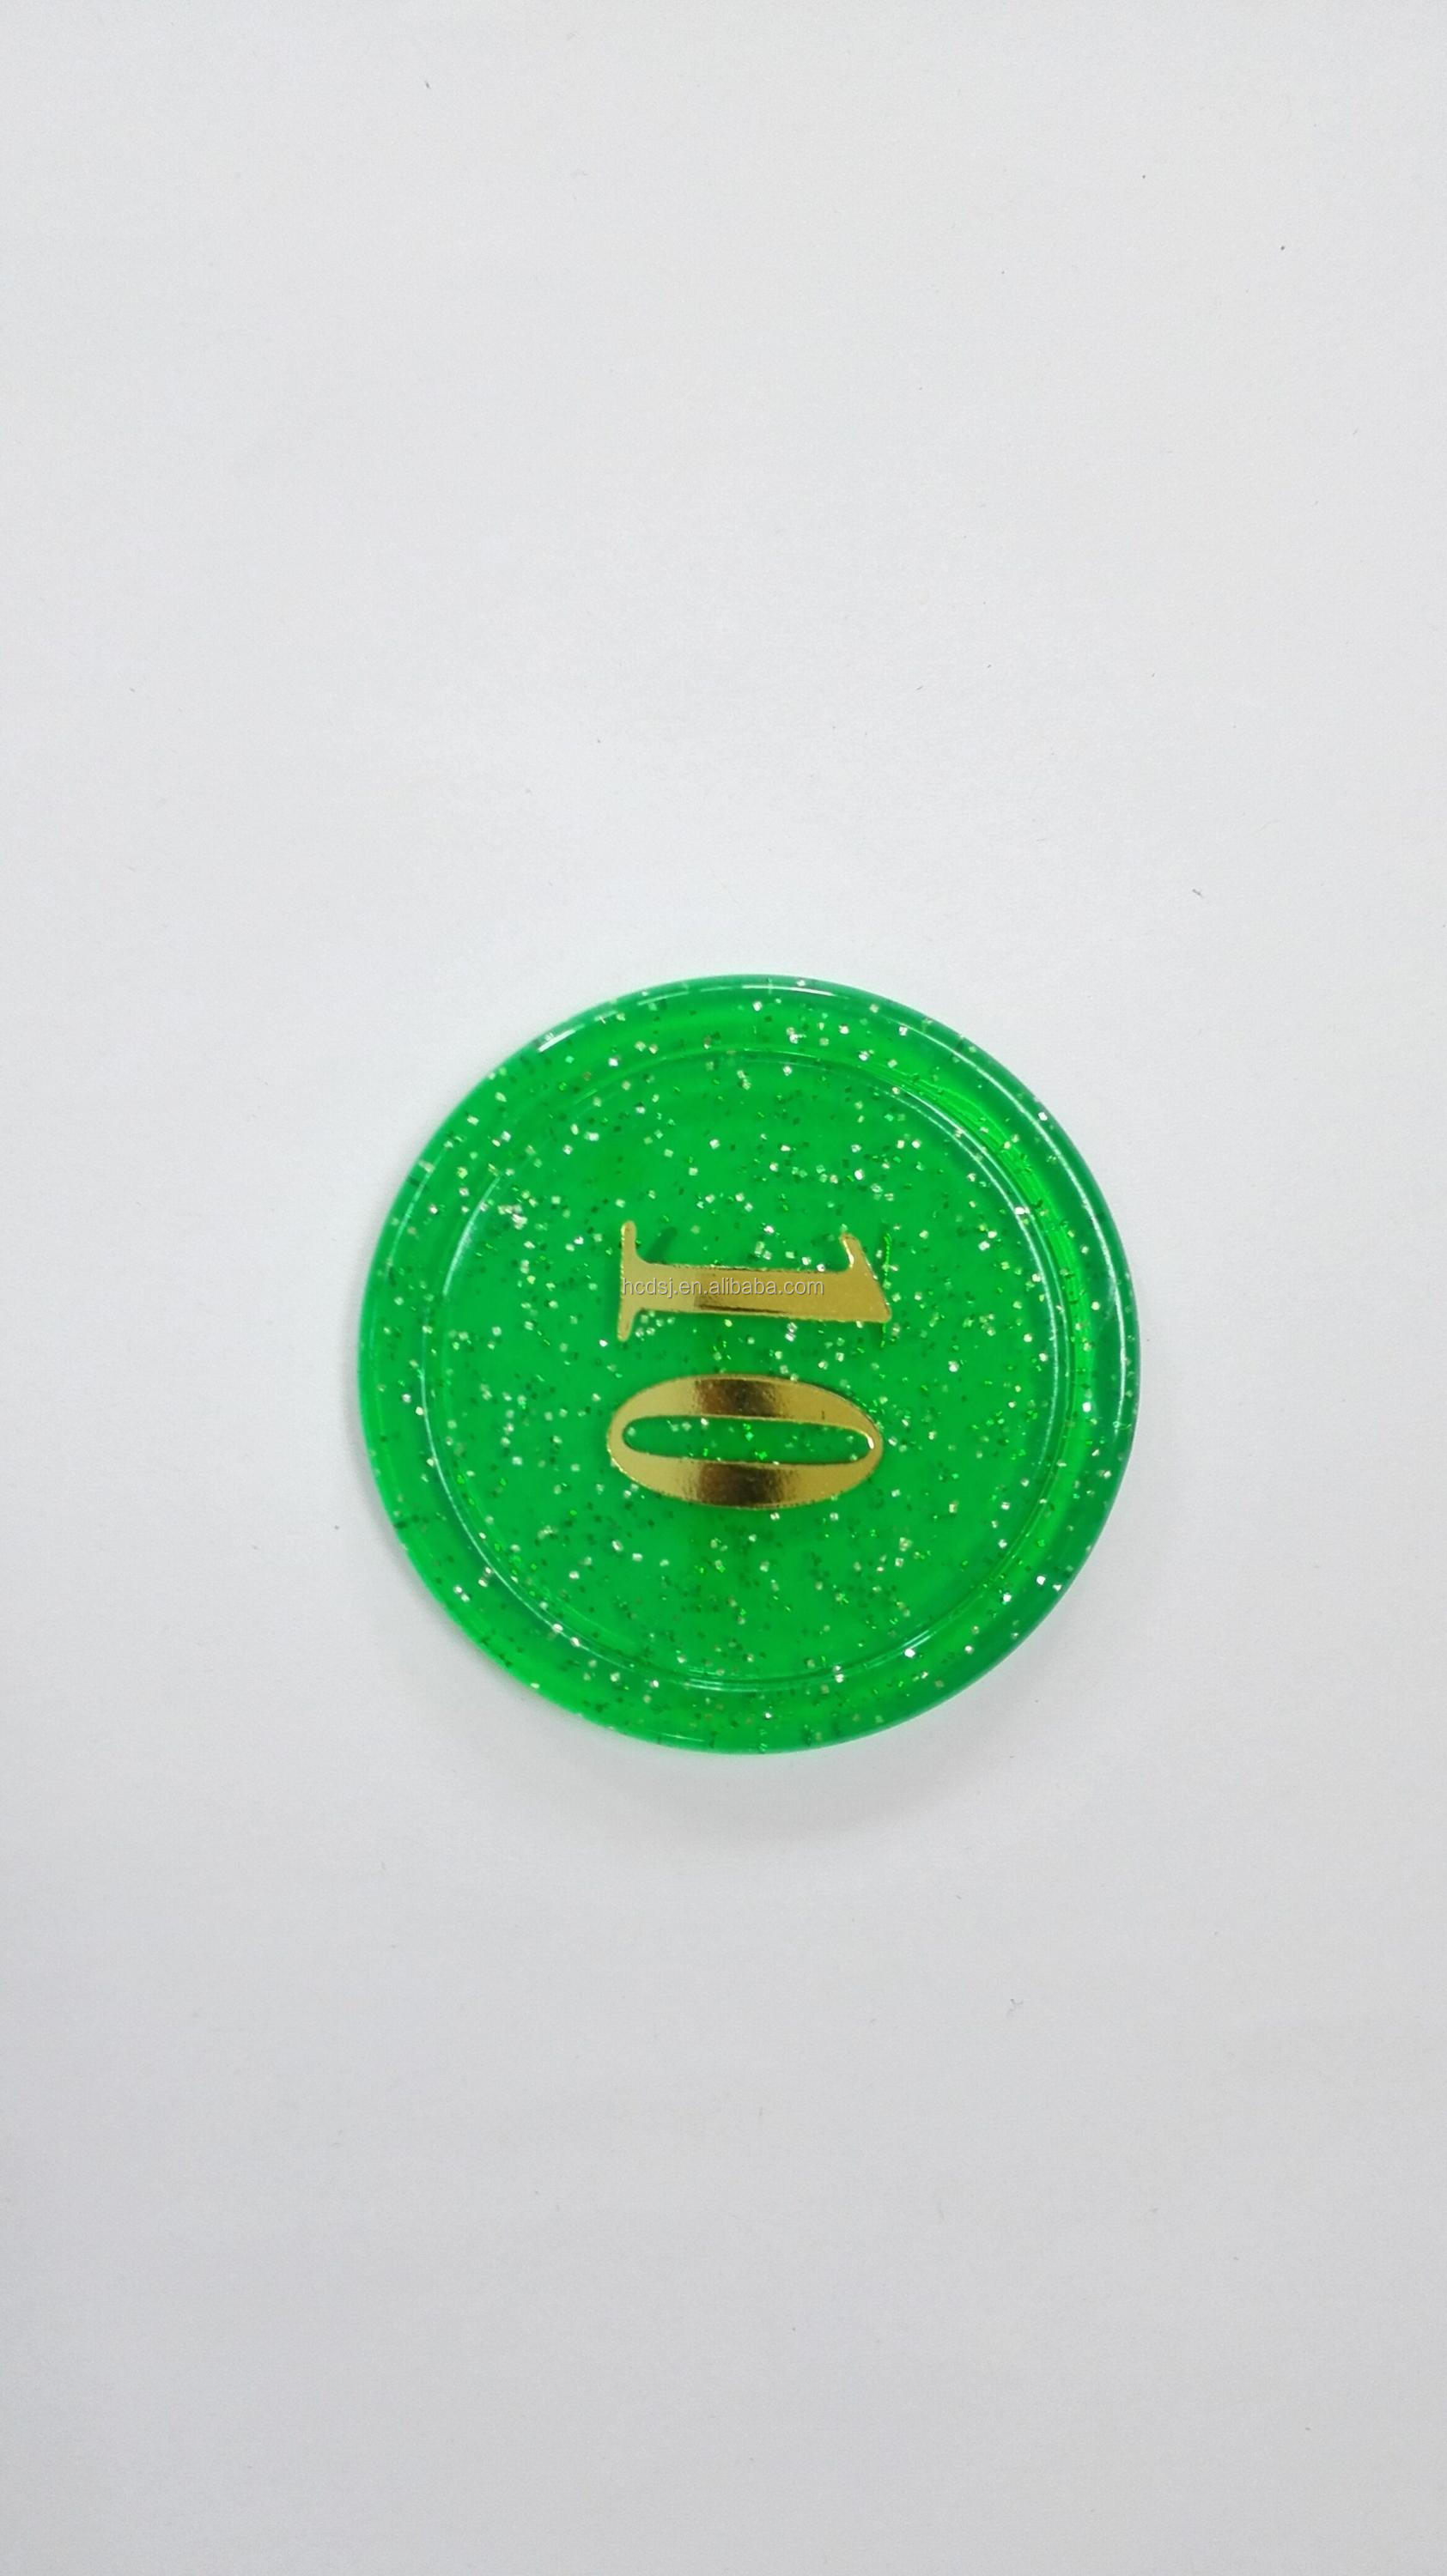 2017 new mold large size transparent plastic game tokens